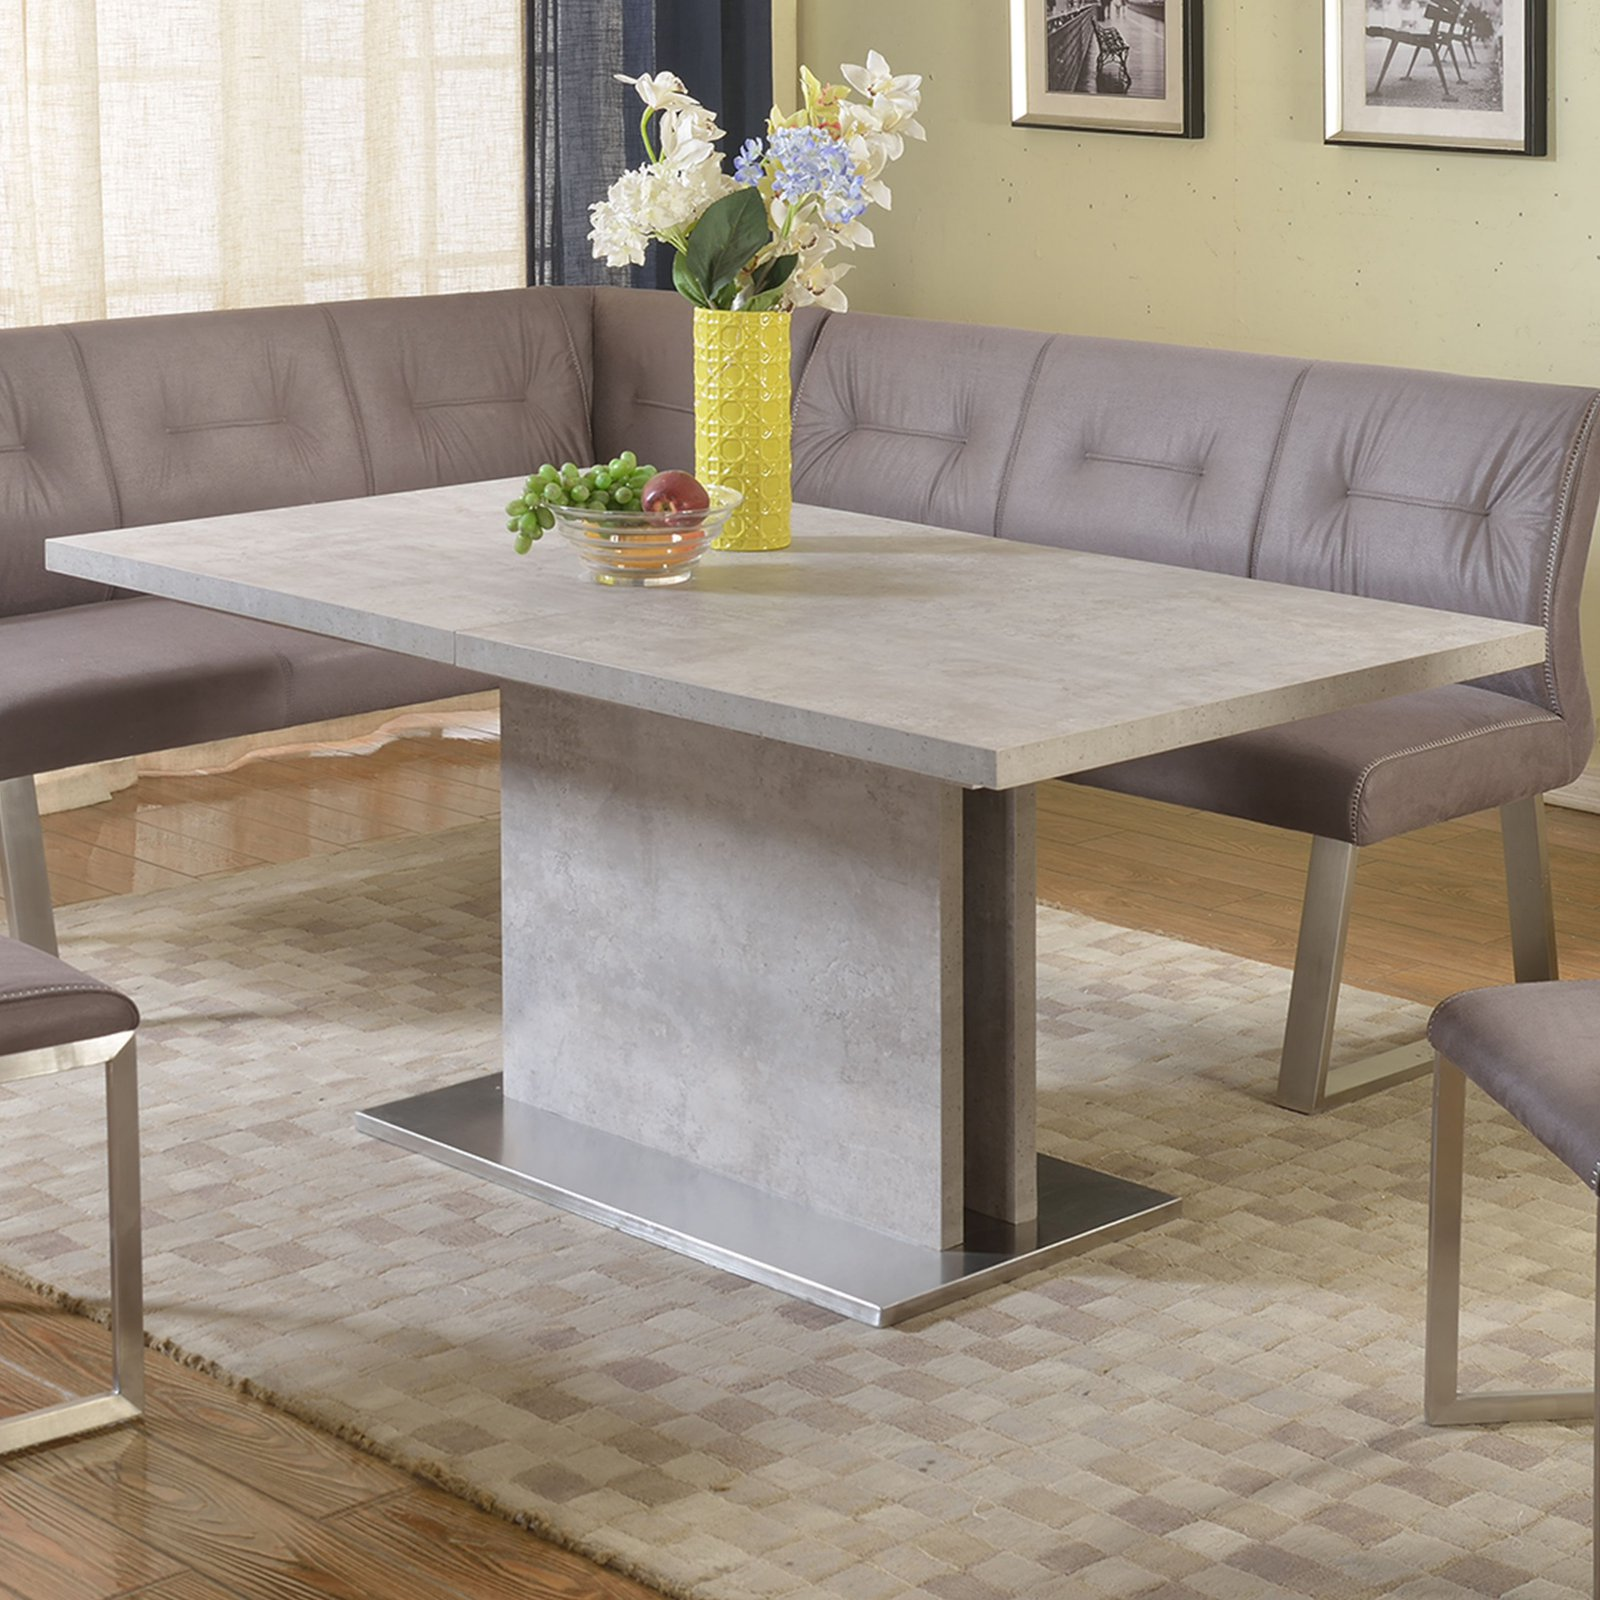 Chintaly Kalinda Butterfly Extension Dining Table